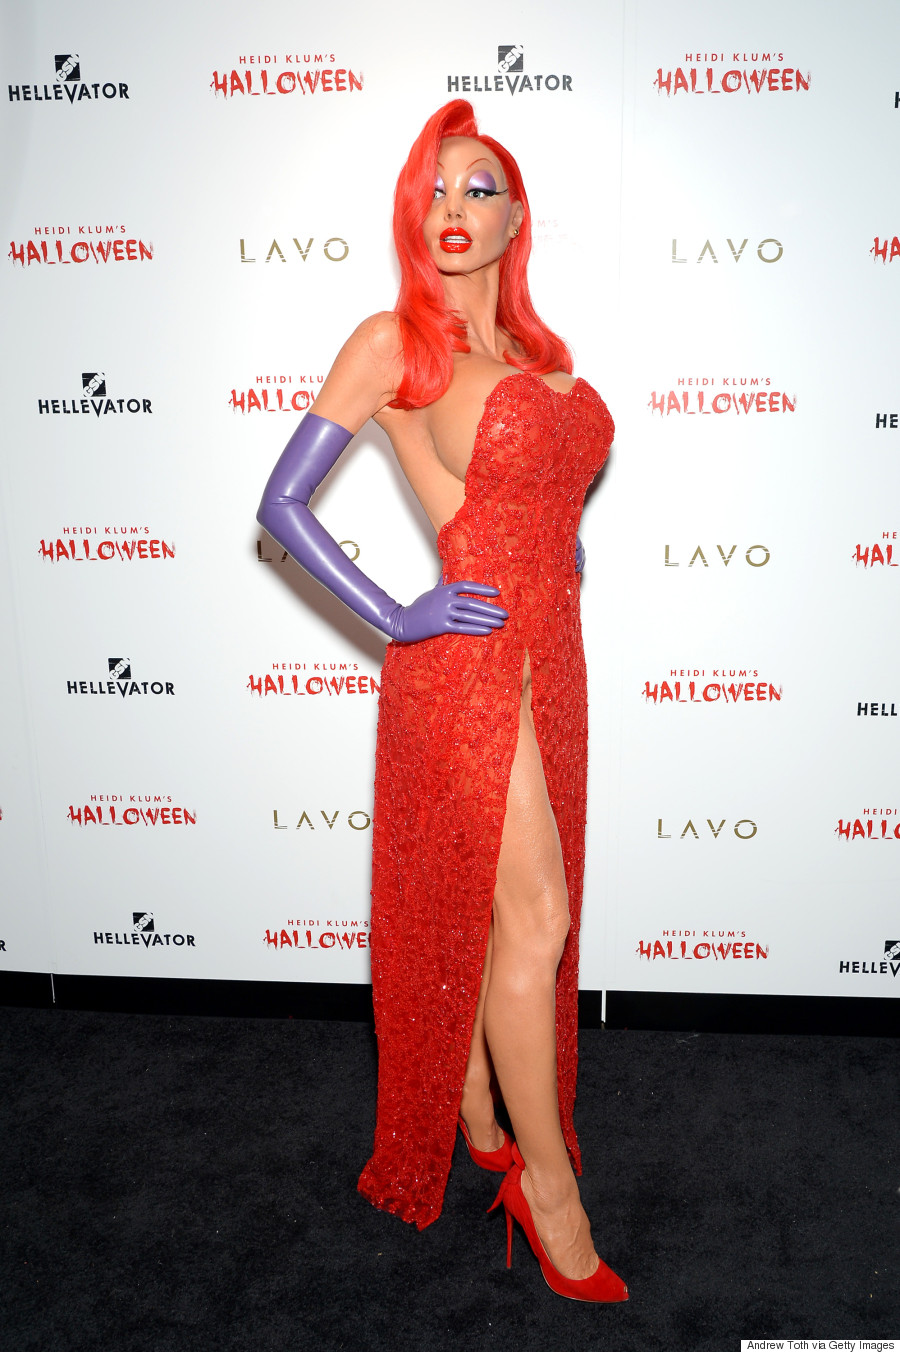 A Look At Heidi Klum's Best Halloween Costumes Throughout ...